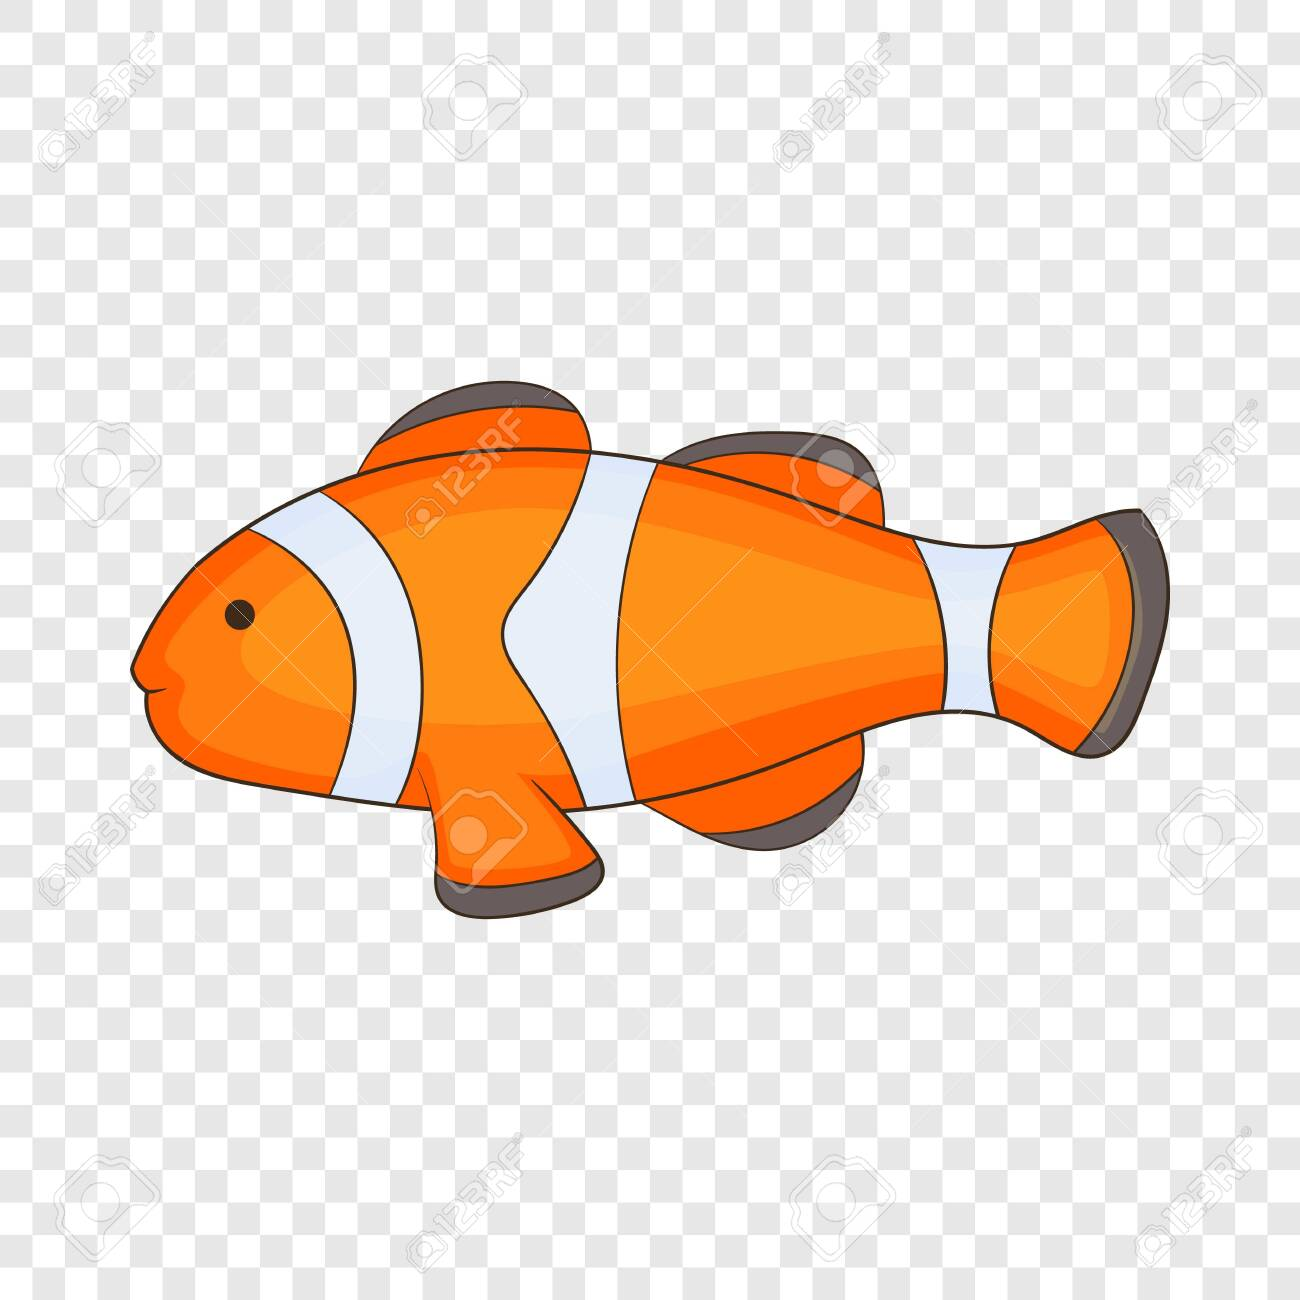 Download Clown Fish Icon Cartoon Illustration Of Clown Fish Vector Icon Royalty Free Cliparts Vectors And Stock Illustration Image 130248413